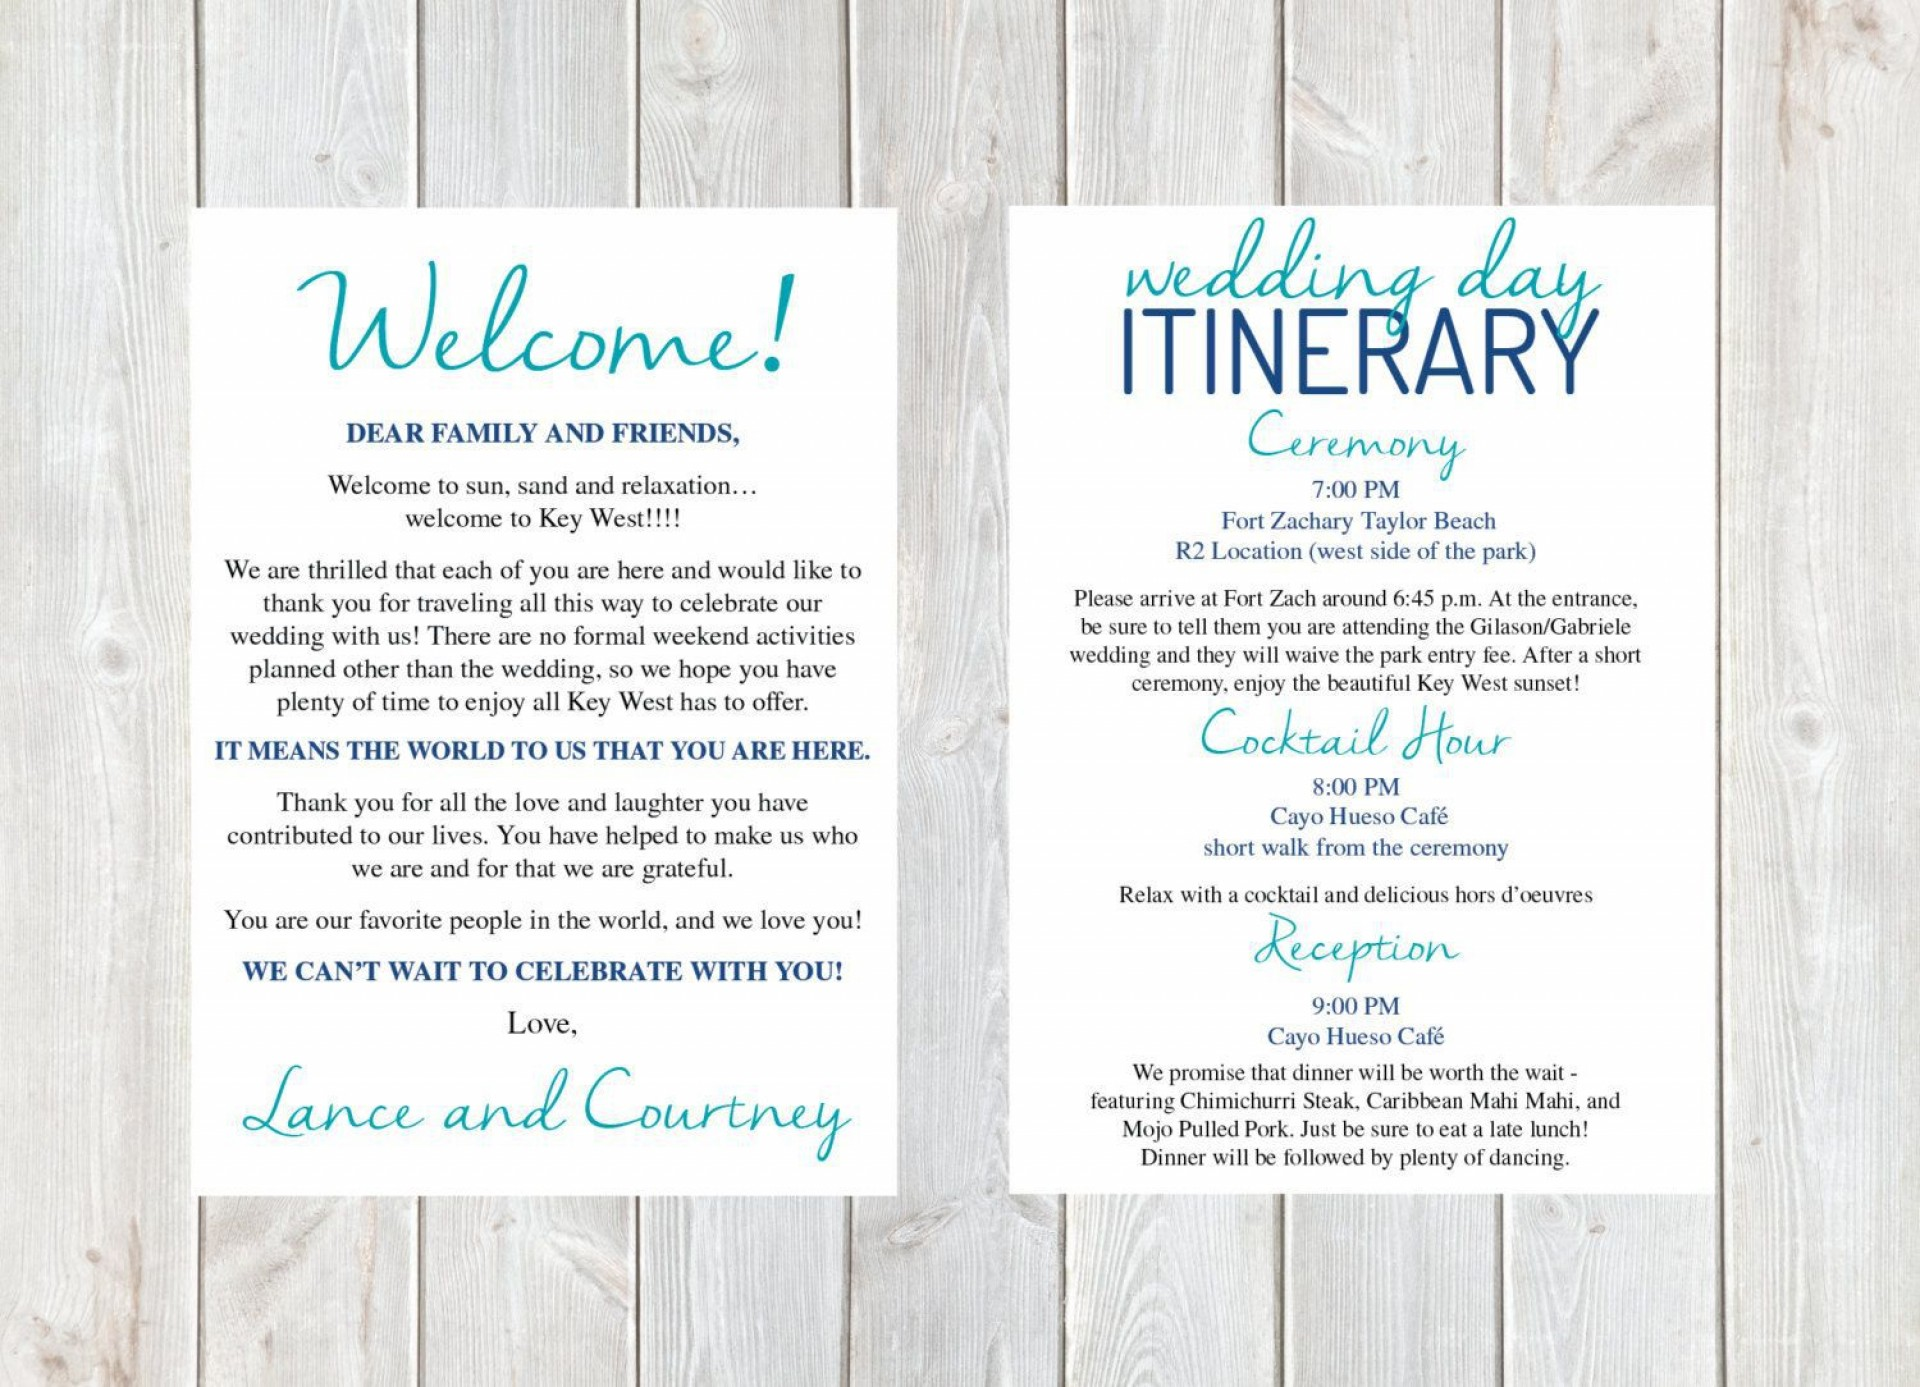 001 Rare Wedding Hotel Welcome Letter Template Highest Clarity 1920